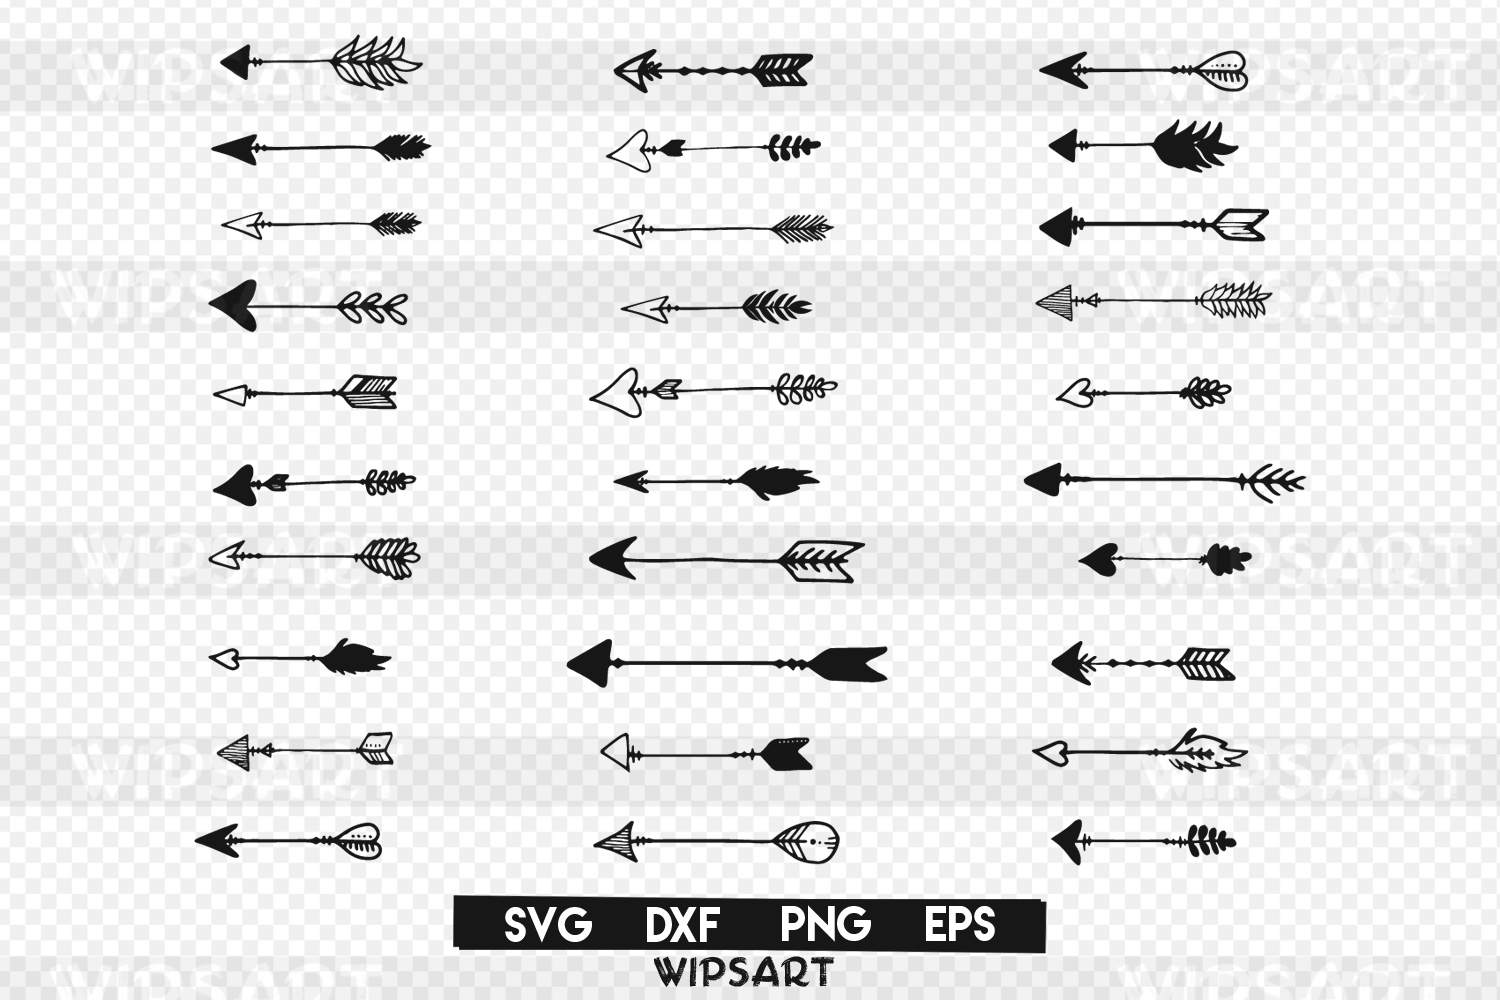 SALE! 30 arrows silhouette text svg file, arrow hand drawing example image 1